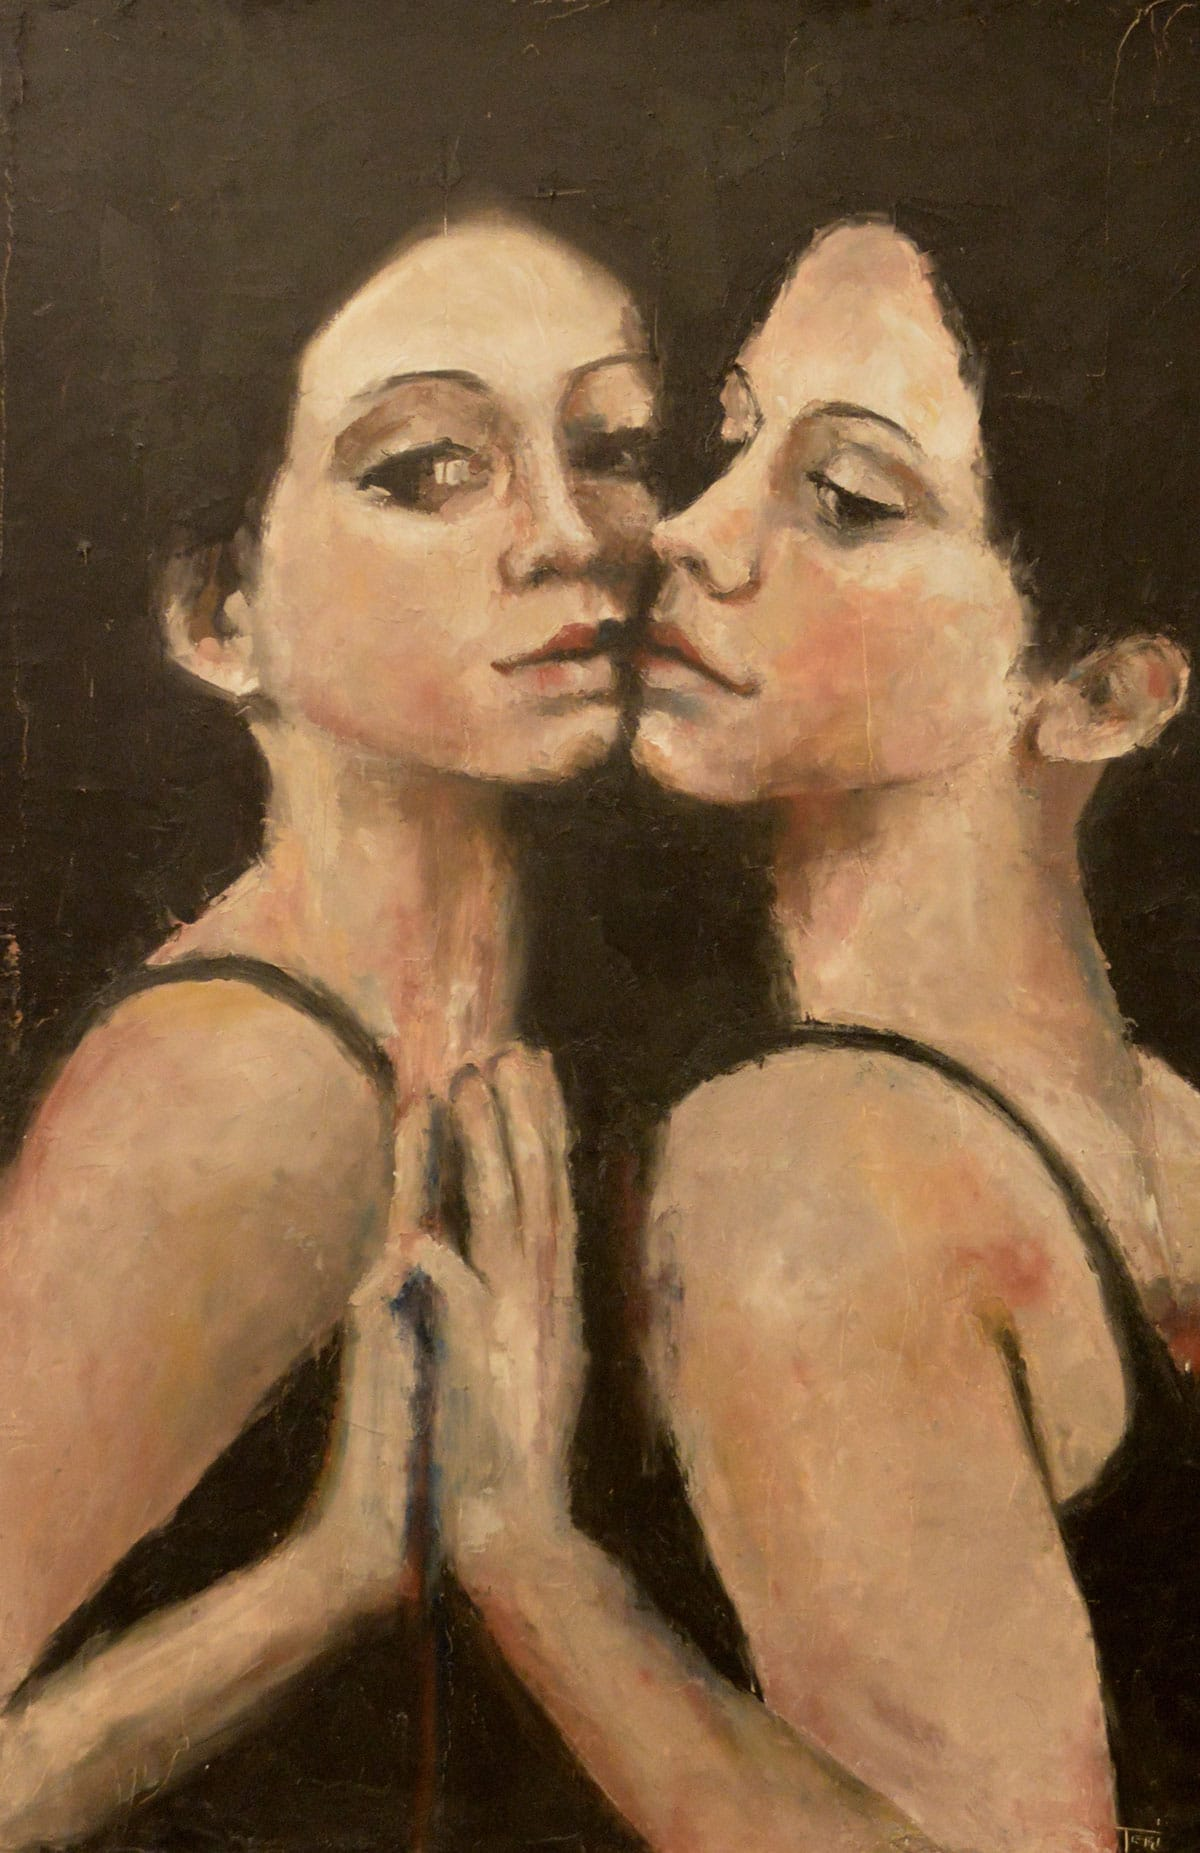 Studio22 confronts self-image in newest exhibits – Queen's Journal